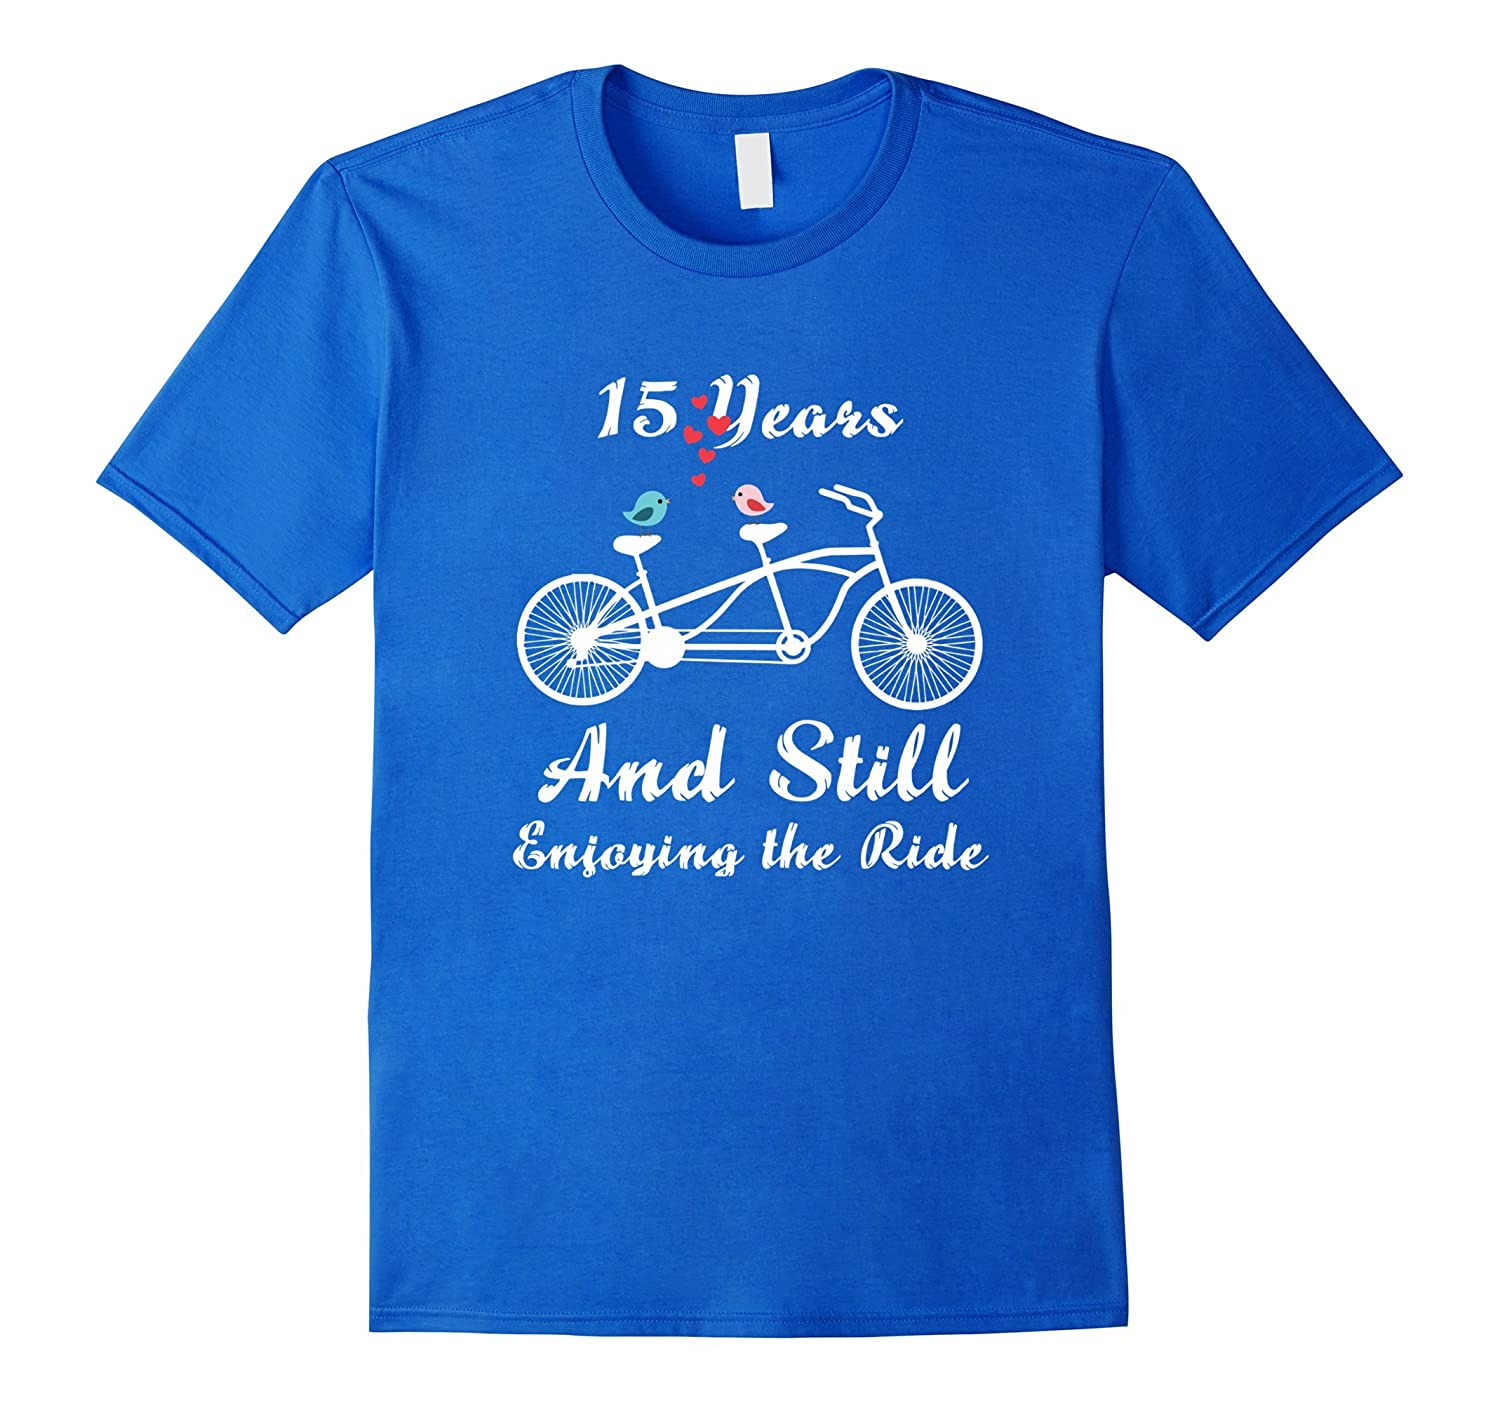 15th Wedding Anniversary T Shirt 15 Years Marriage Gift Th Teehelen